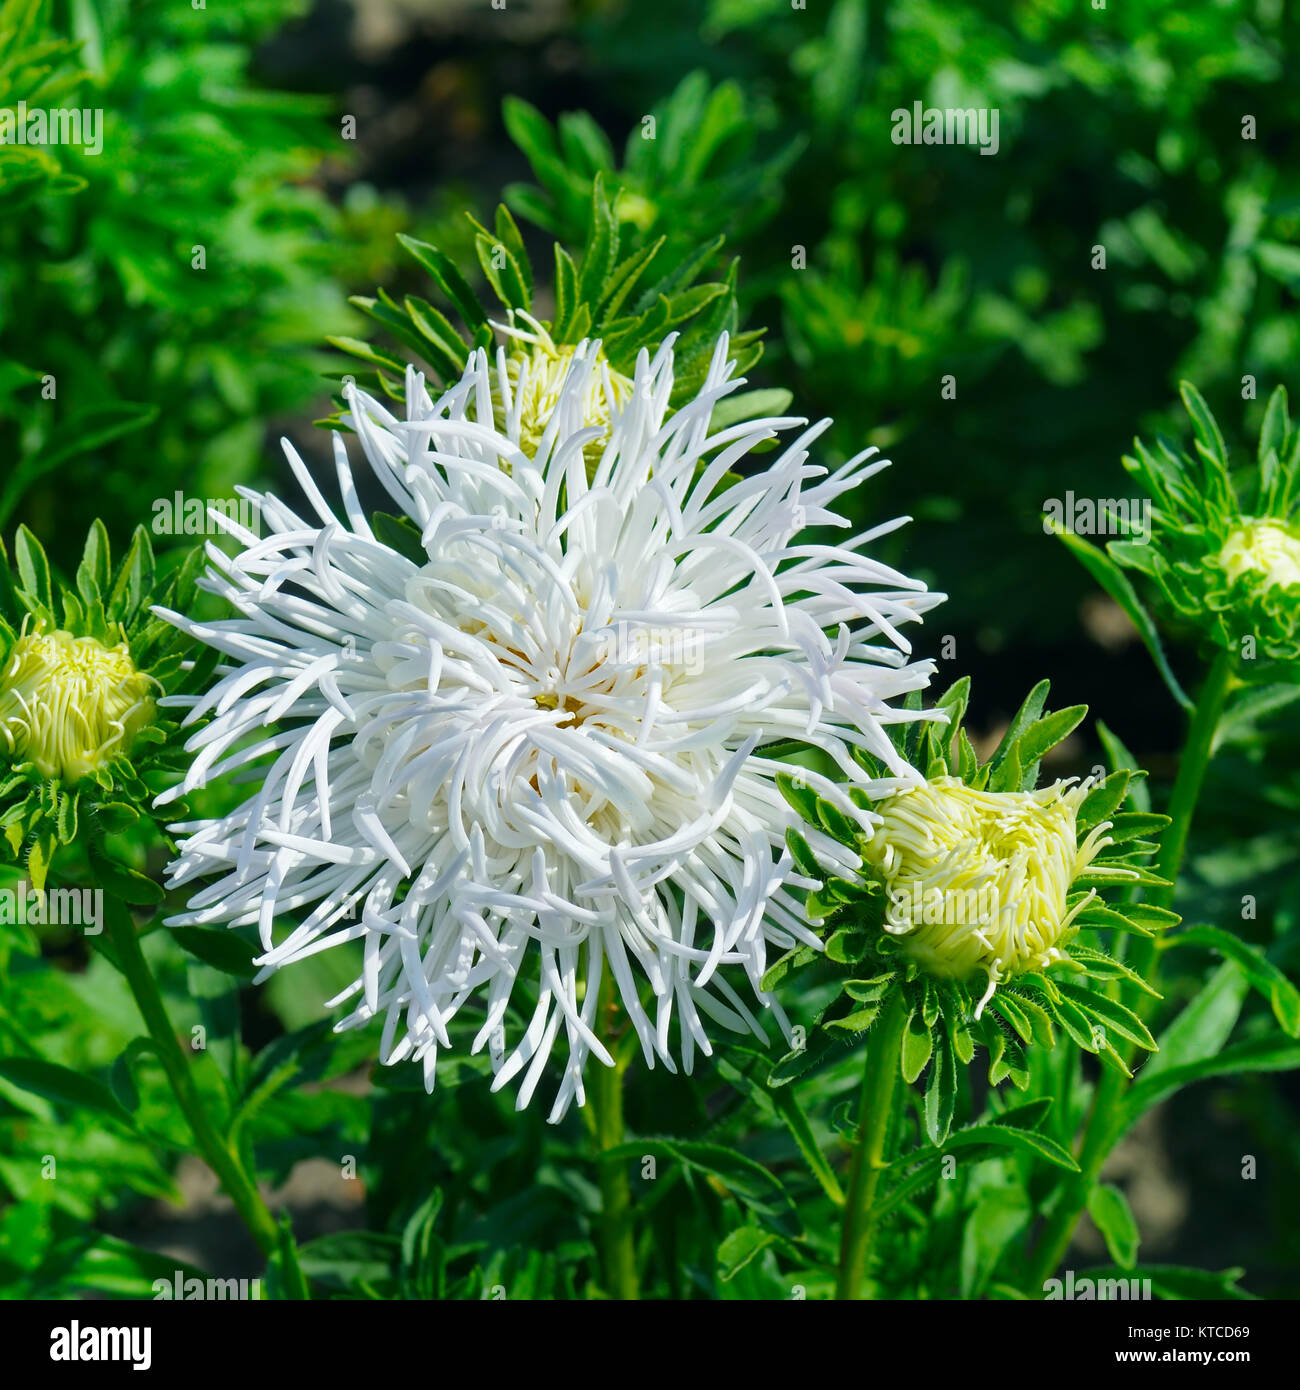 Aster Flowerbed In Summer Focus On A White Flower Stock Photo